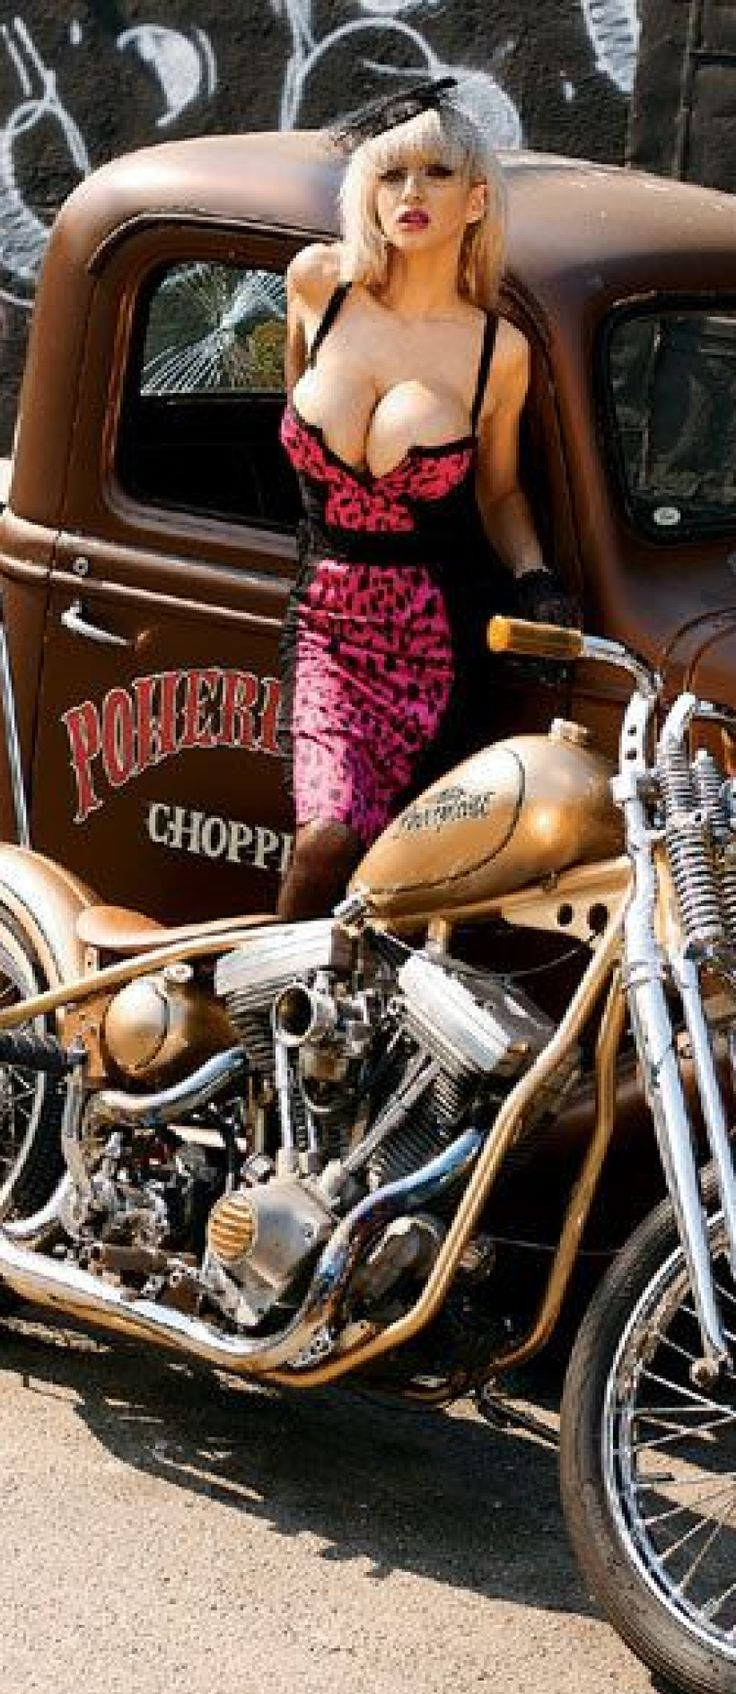 Harley Davidson Service Repair Manuals.Instant Download Available Here  http://james6269.tradebit.com/?s=harley